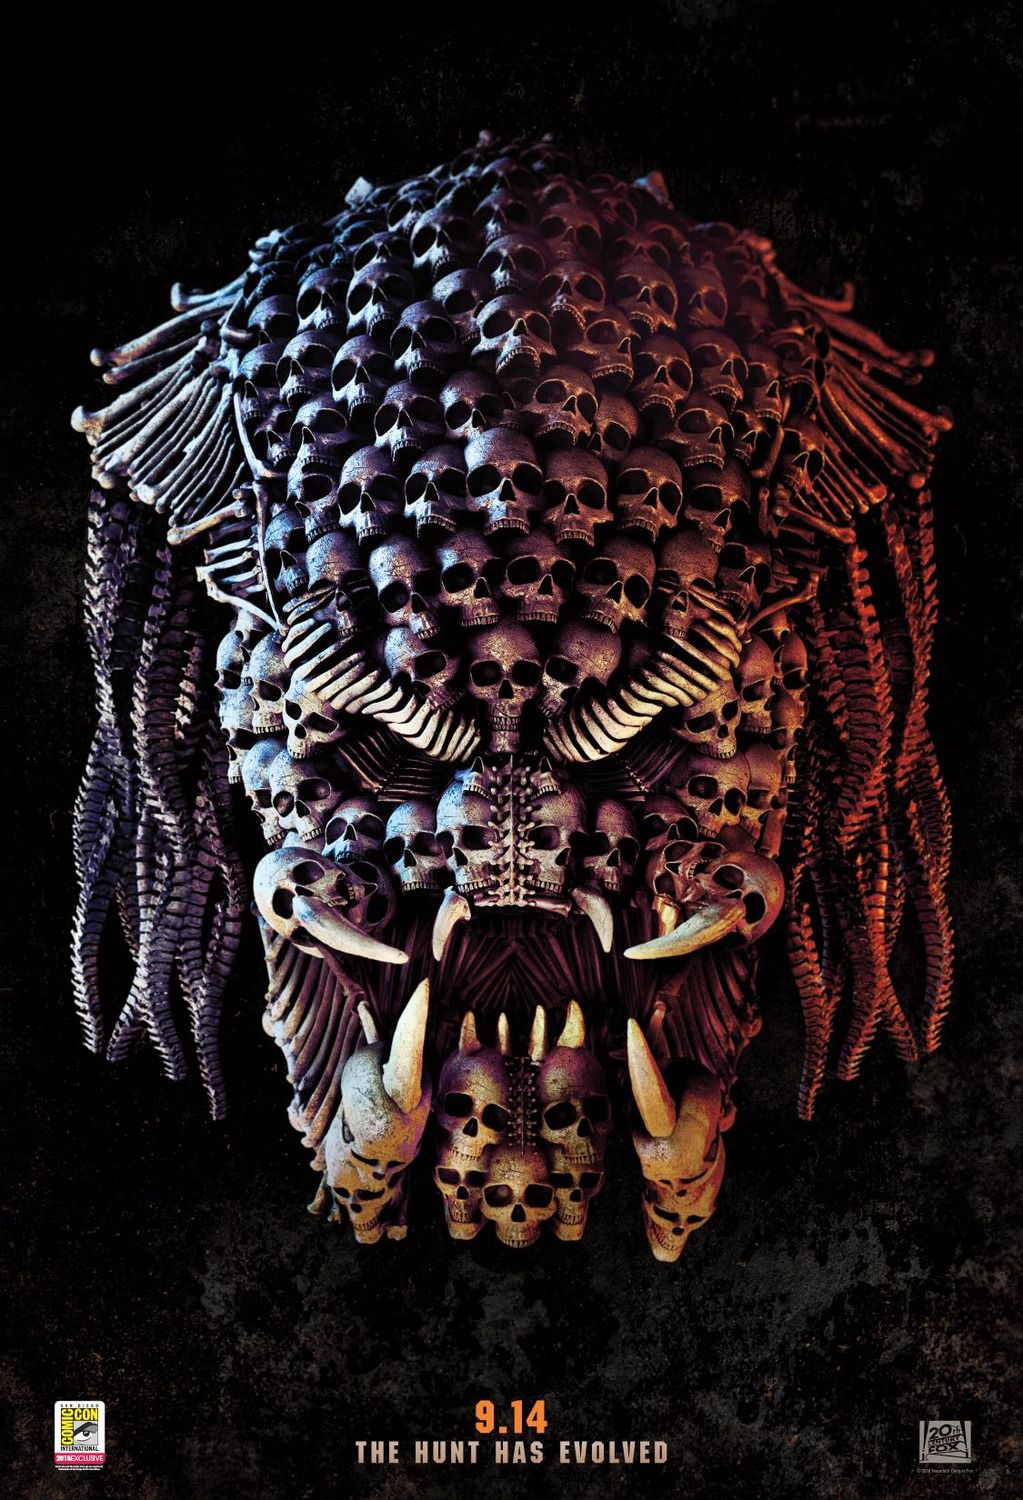 The Predator (2018) - alien face